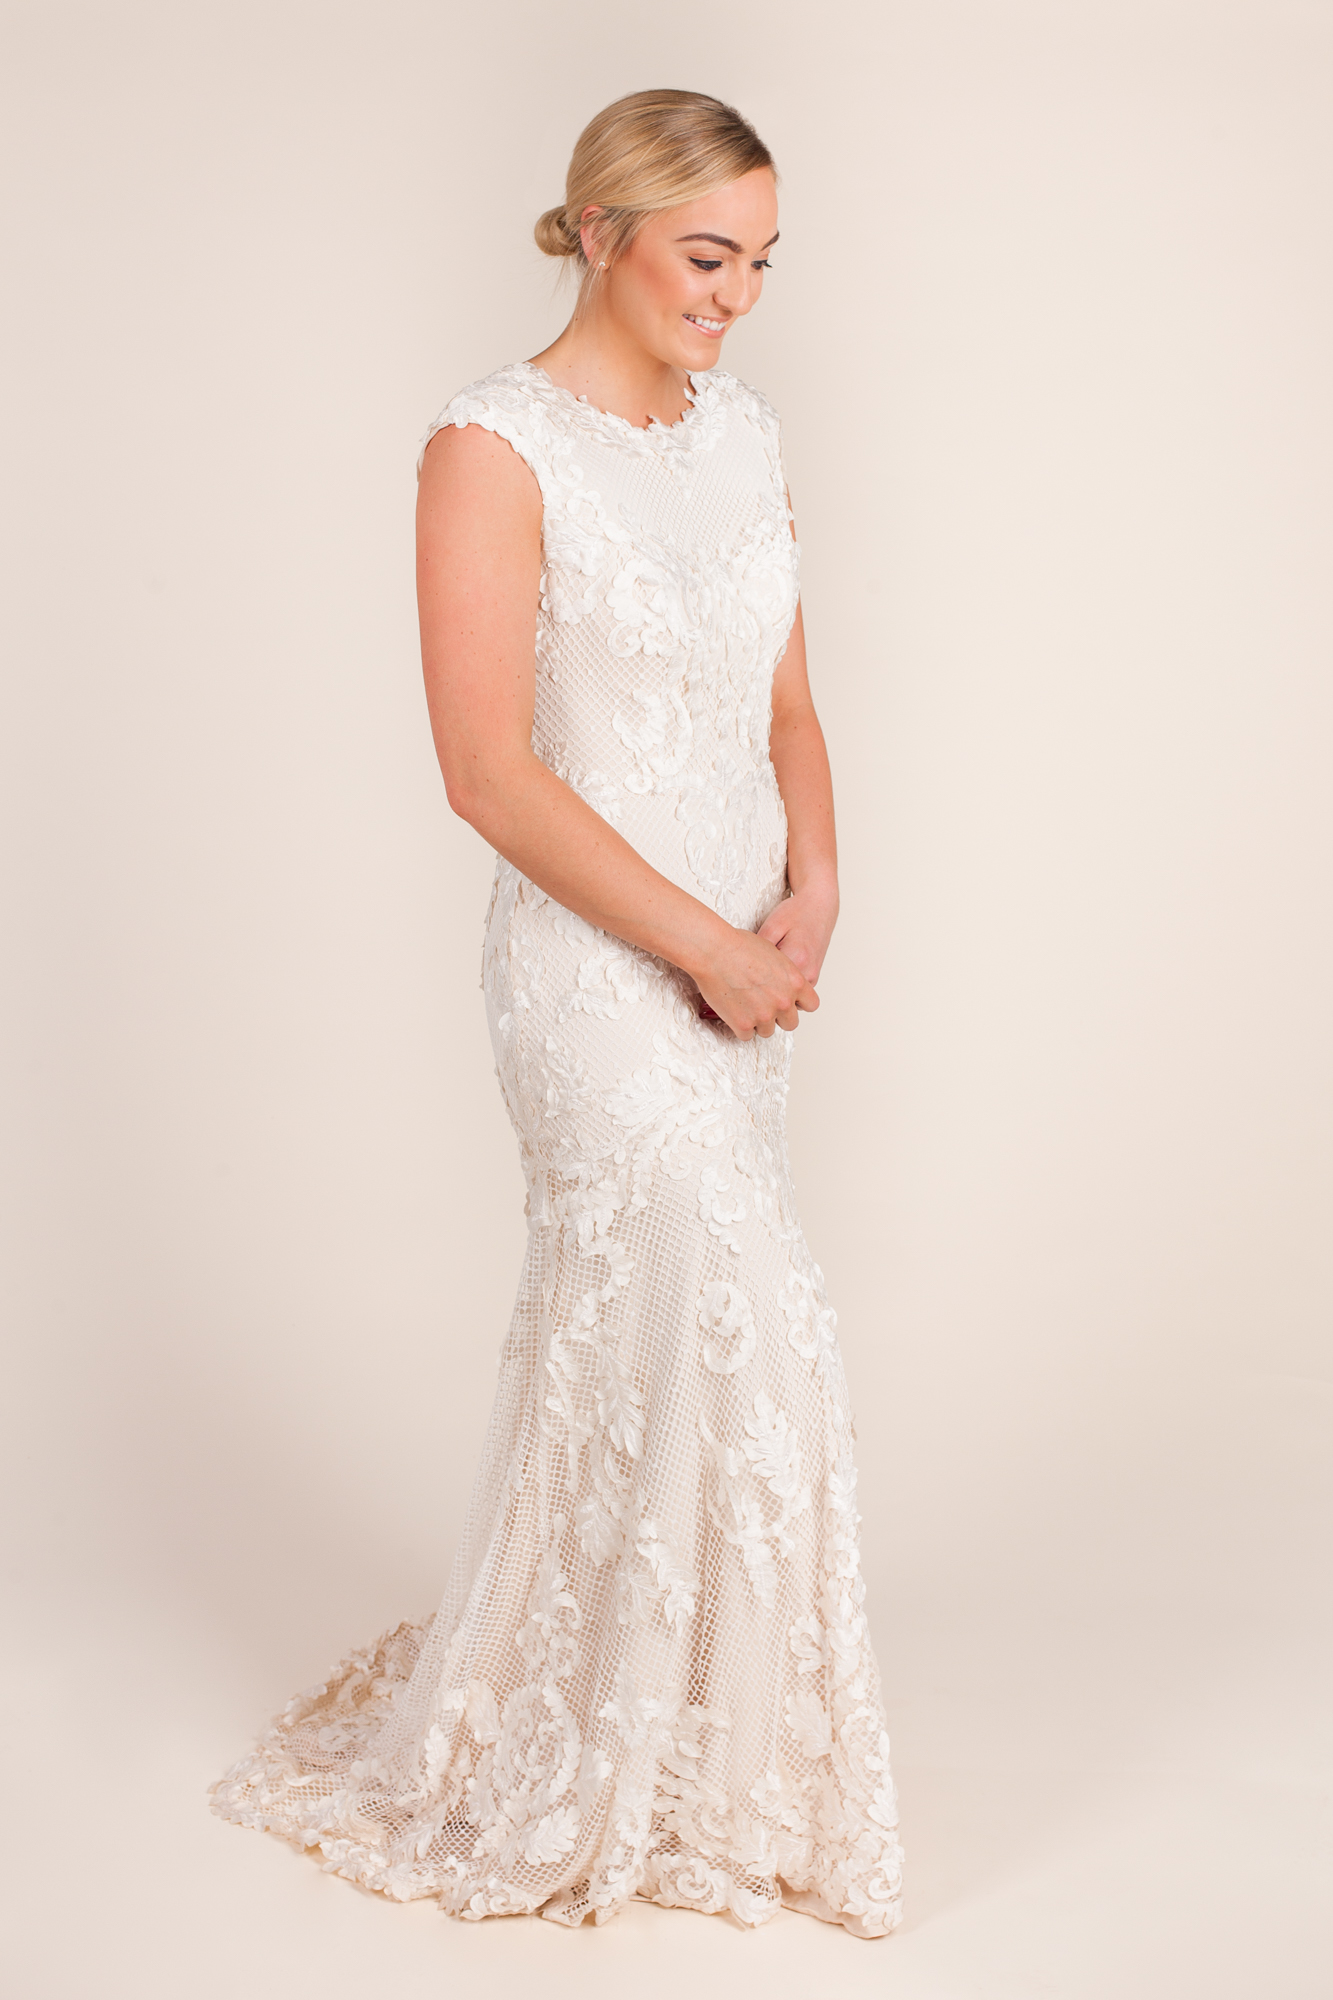 Sottero & midgley - Suzanne Rose size 0 - $1150 - (23% OFF)